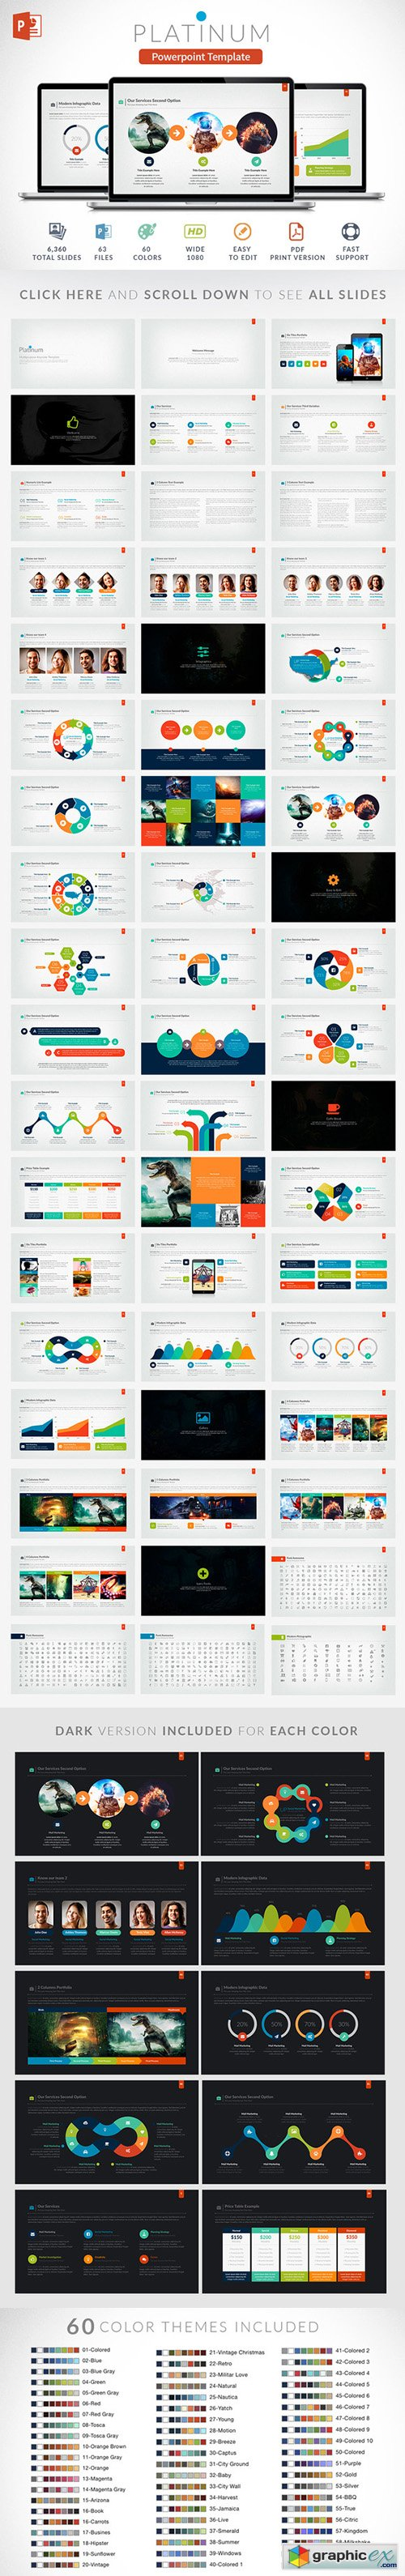 Business plan 2015 powerpoint template free download vector stock business plan 2015 powerpoint template flashek Gallery